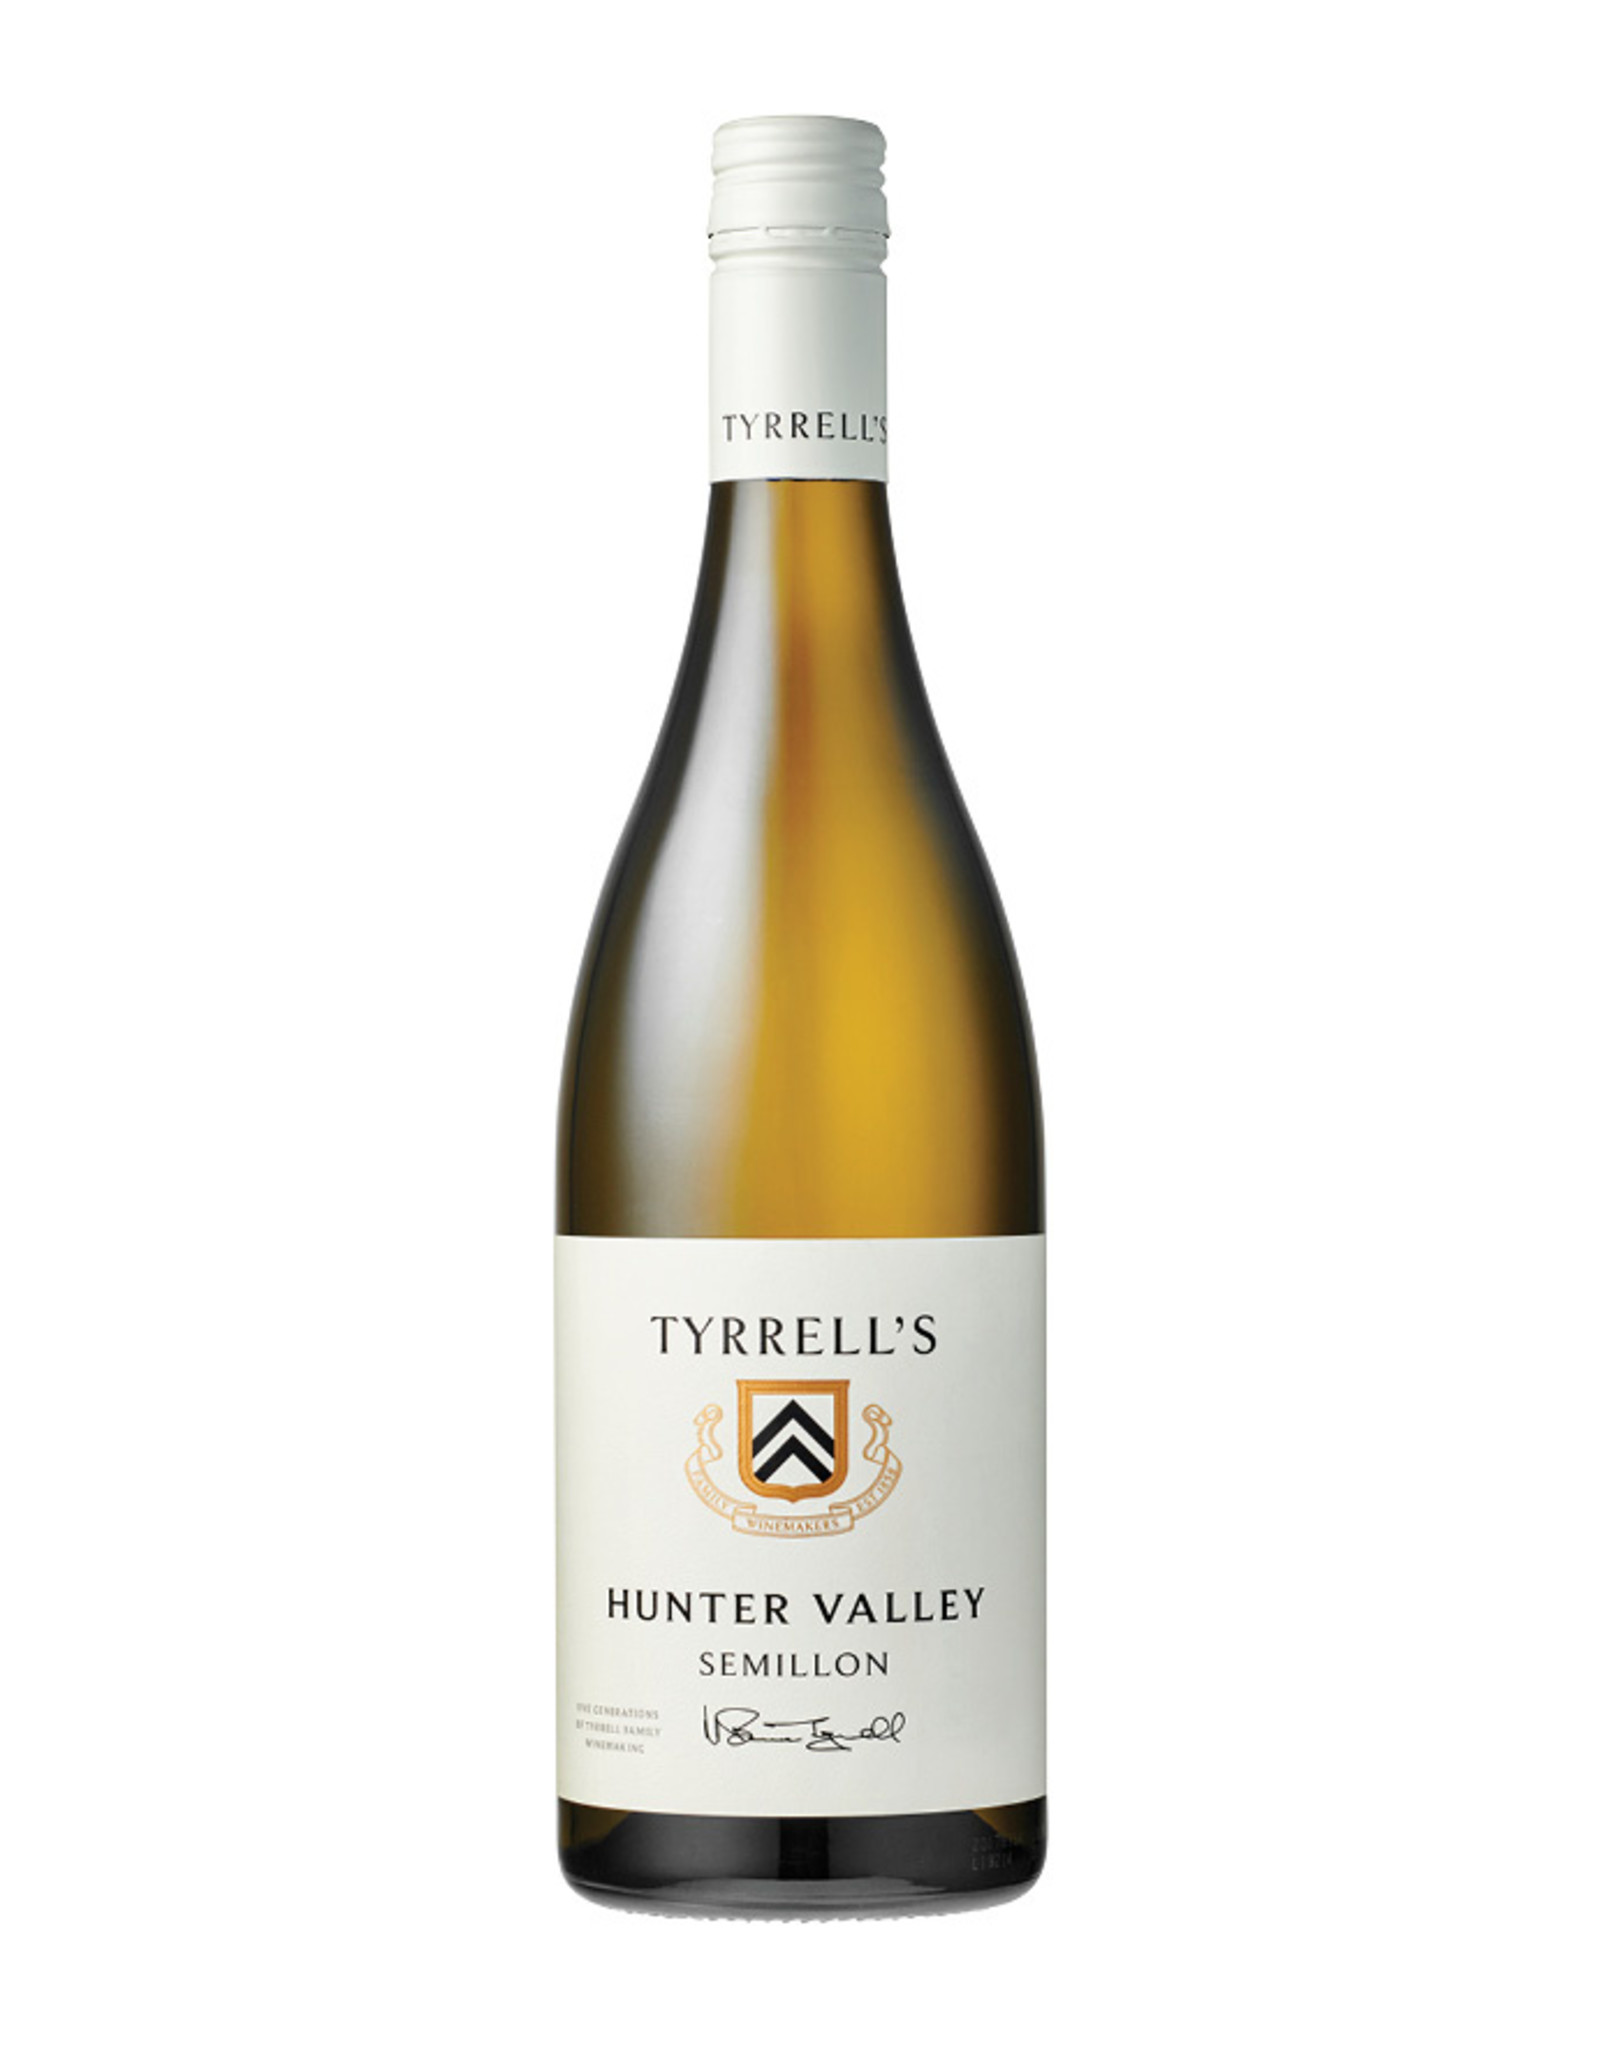 Tyrrell's Semillon Hunter Valley